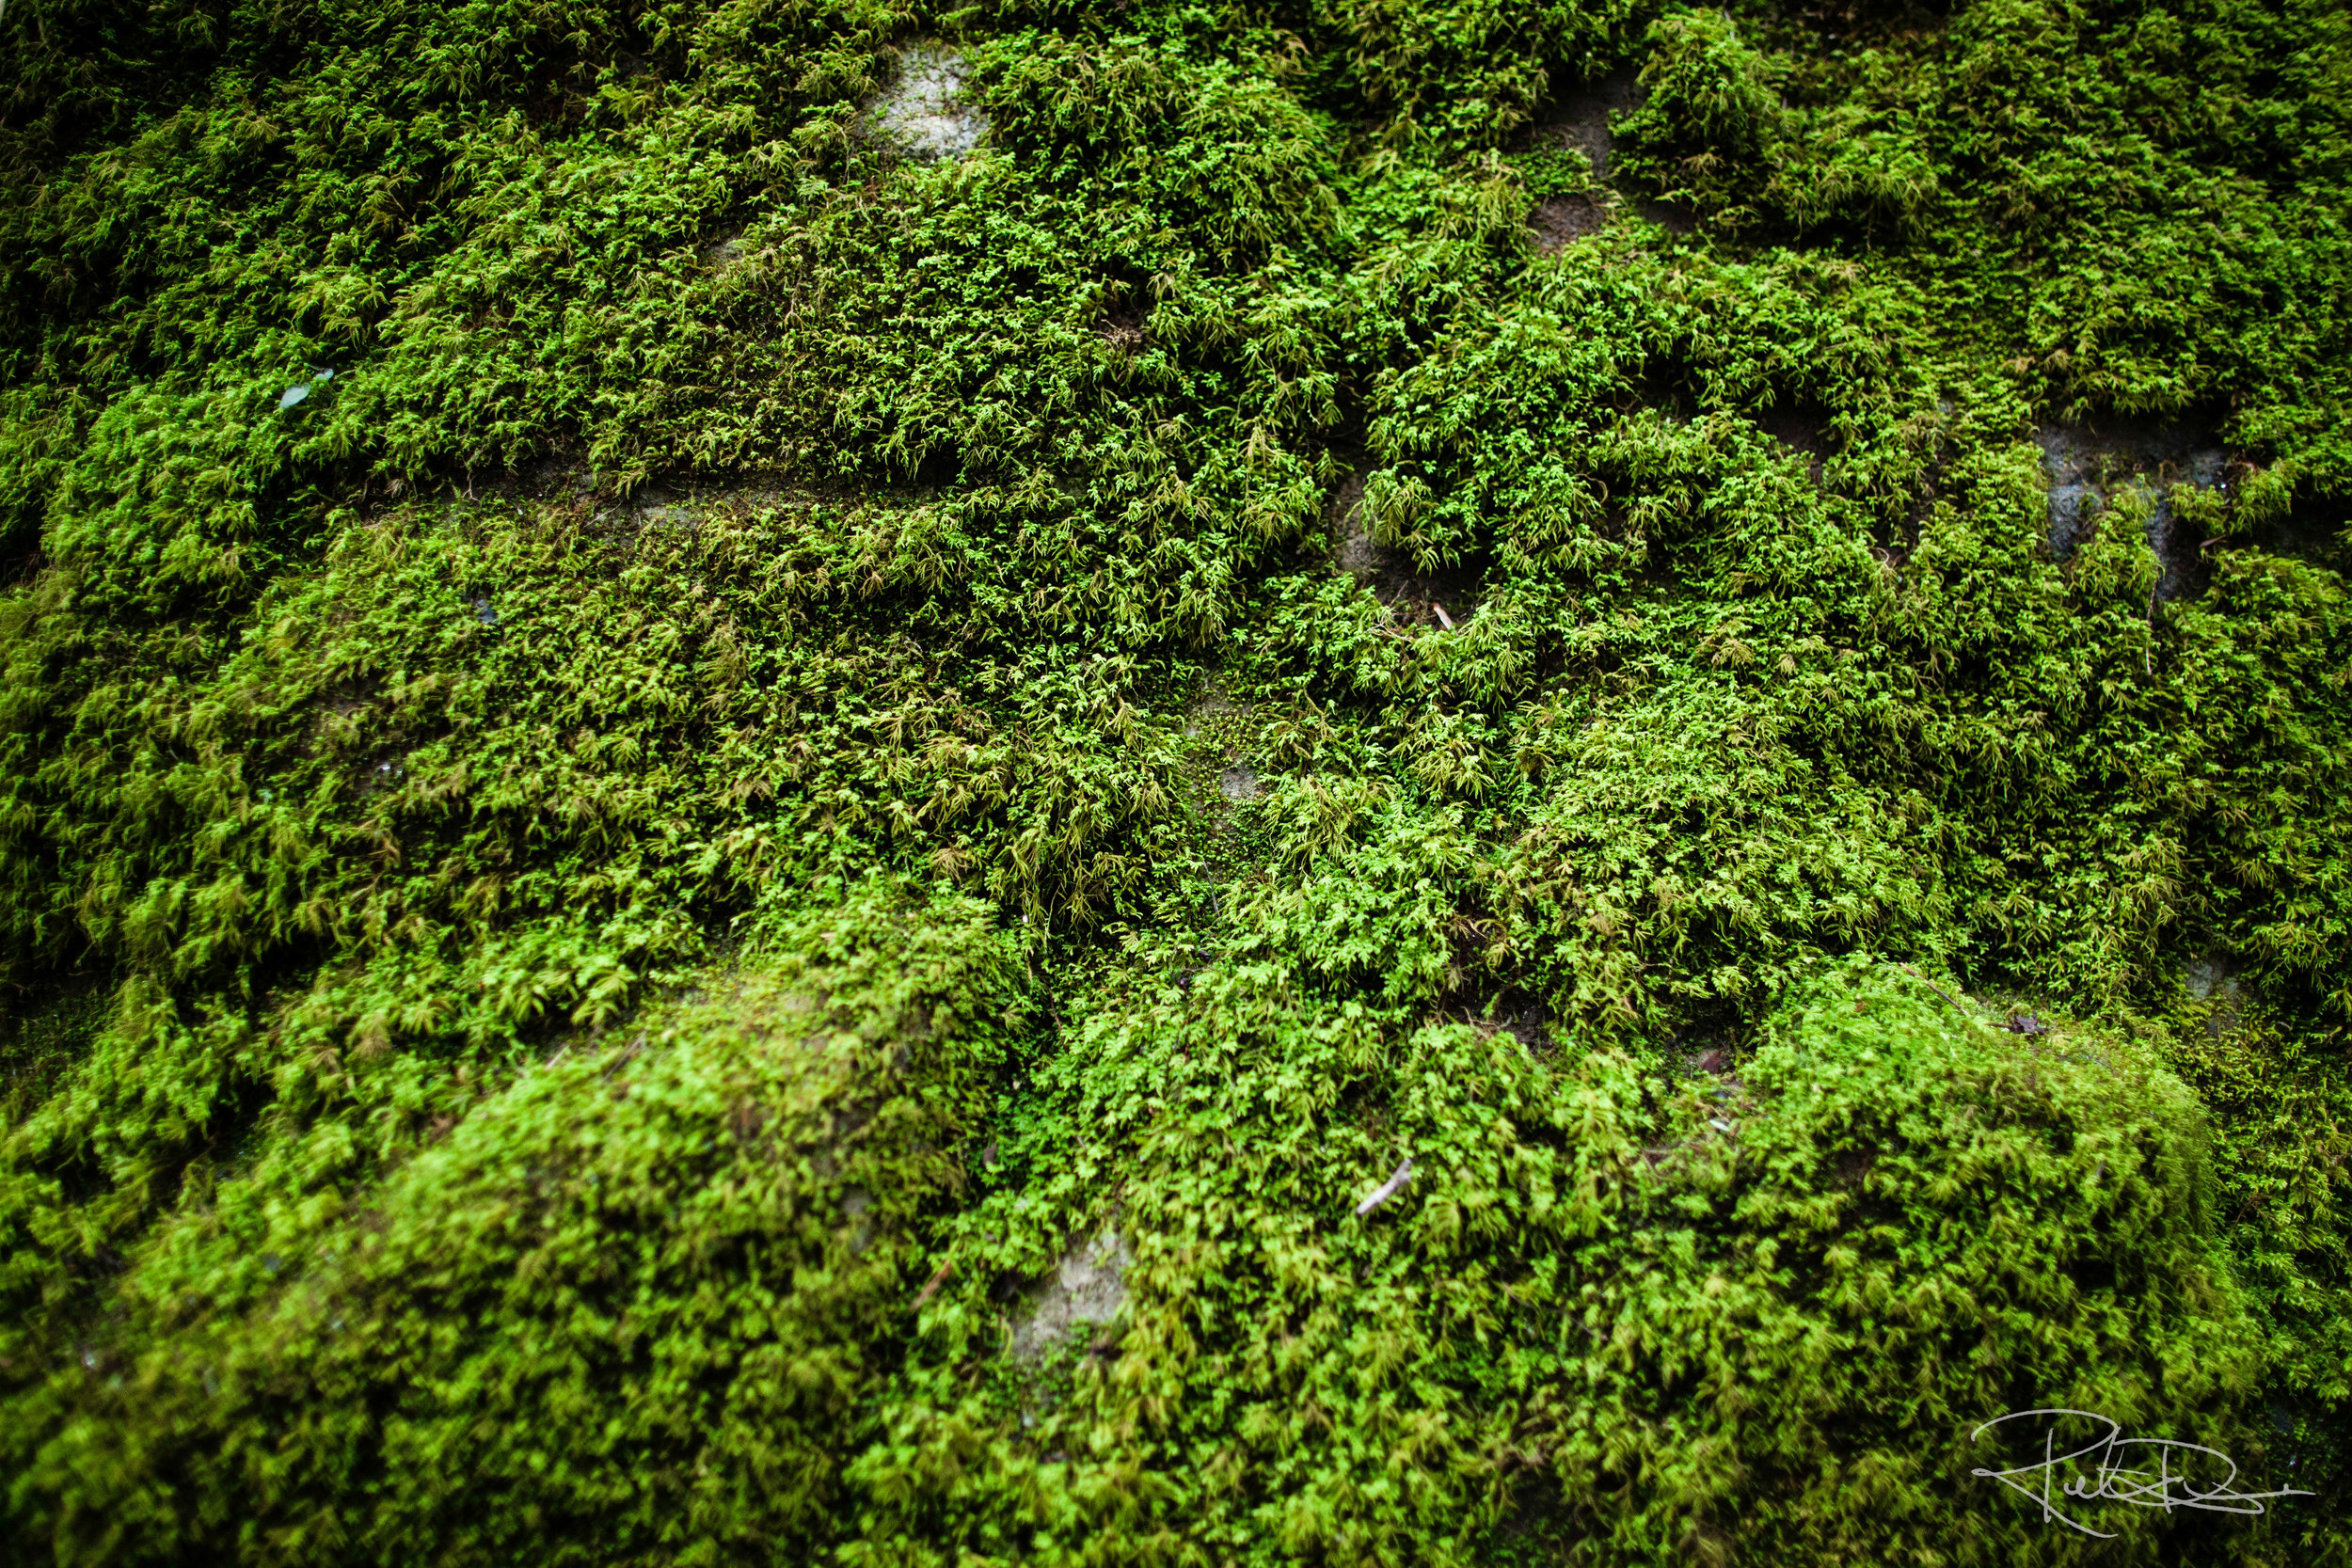 20151231_moss_wild_eco-system_nature_close up_IMG_4018 copy_lower res.jpg